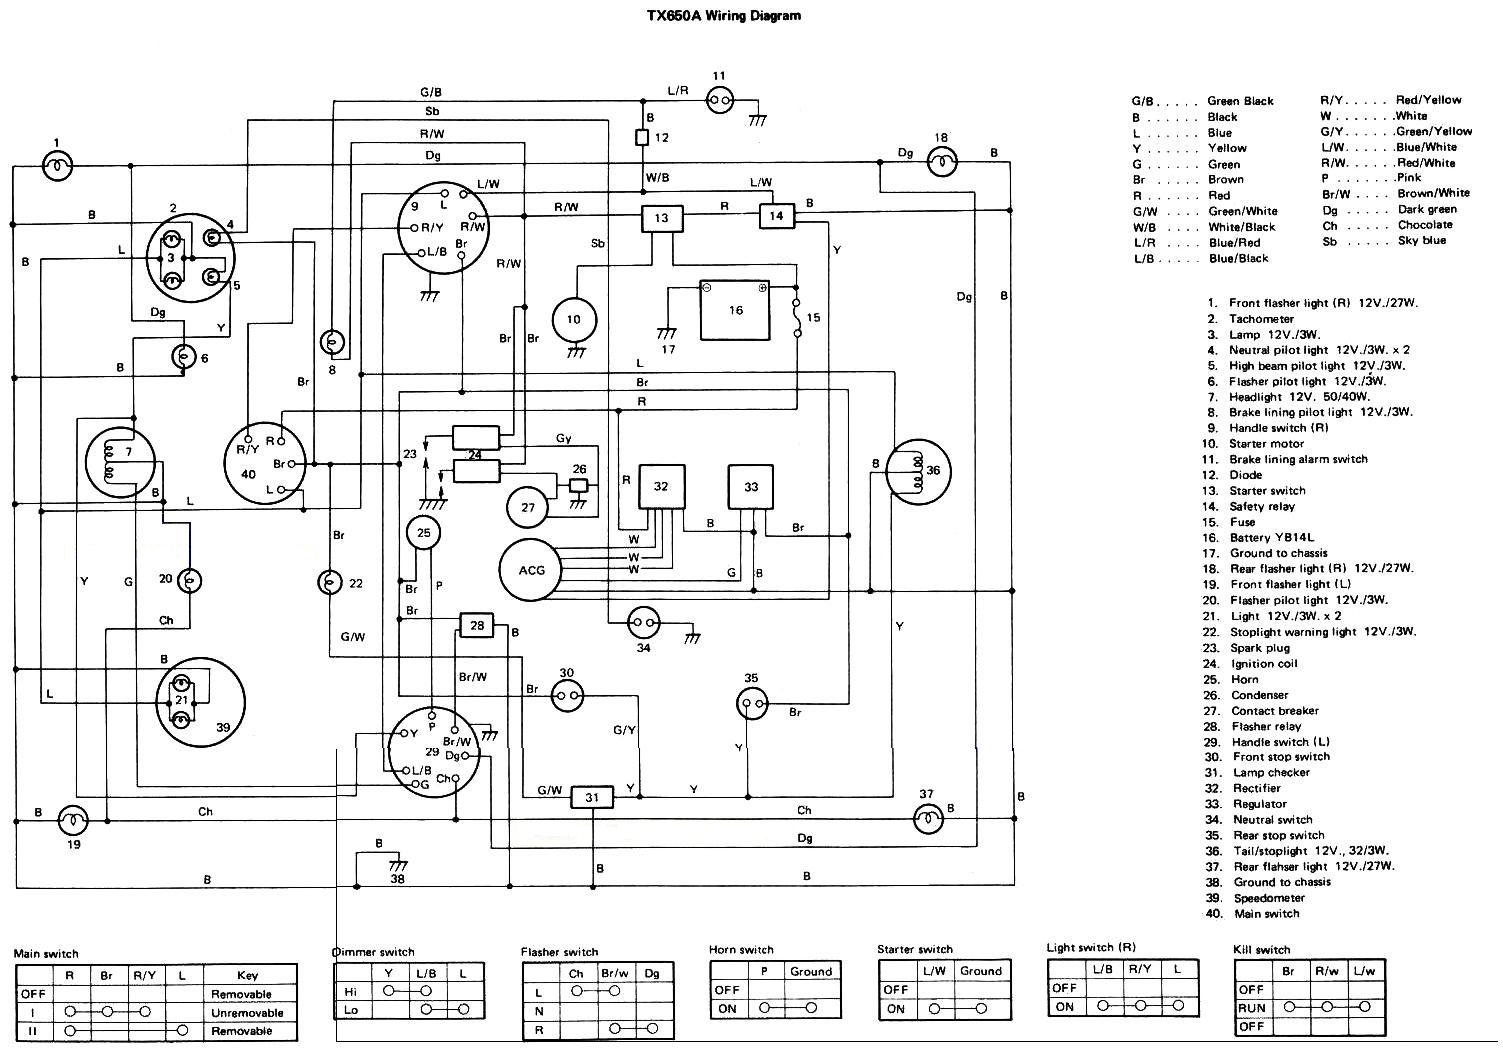 74tx650a yamaha gt80 wiring diagram wiring diagram for professional \u2022